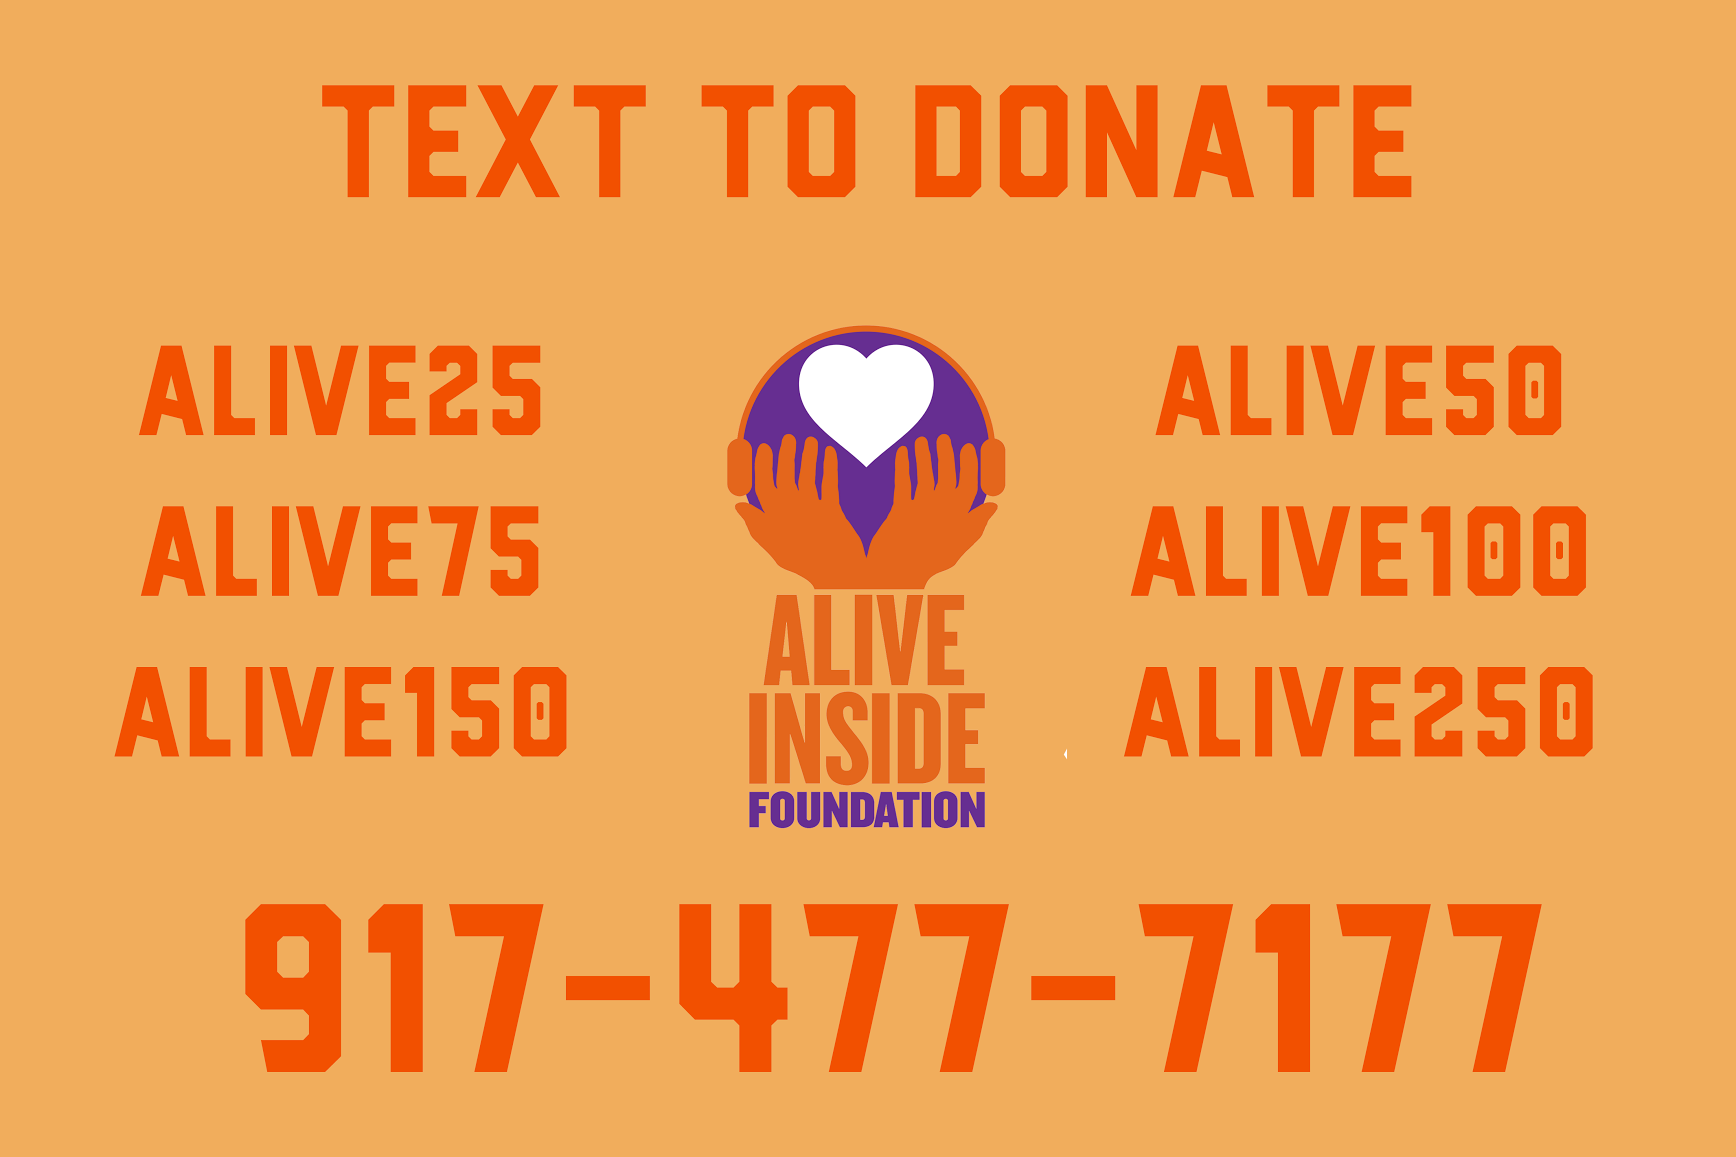 Text-to-donate.png